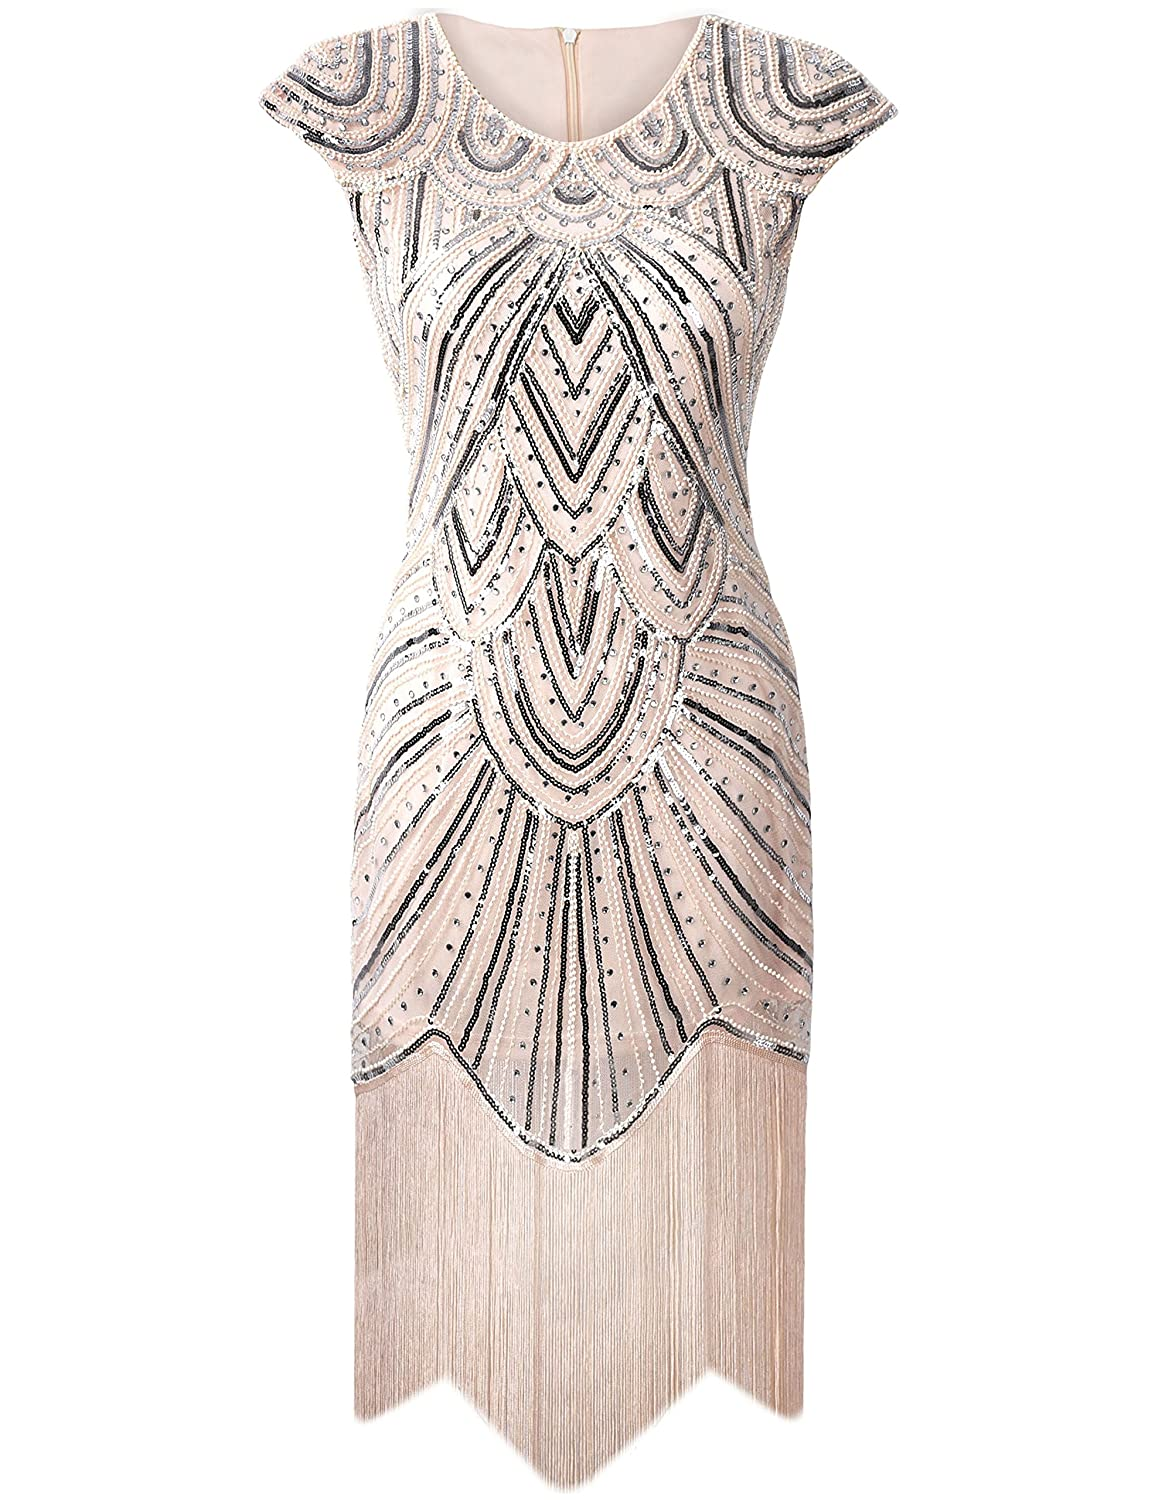 Roaring 20s Costumes- Flapper Costumes, Gangster Costumes  1920s Gastby Diamond Sequined Embellished Fringed Flapper Dress £40.99 AT vintagedancer.com